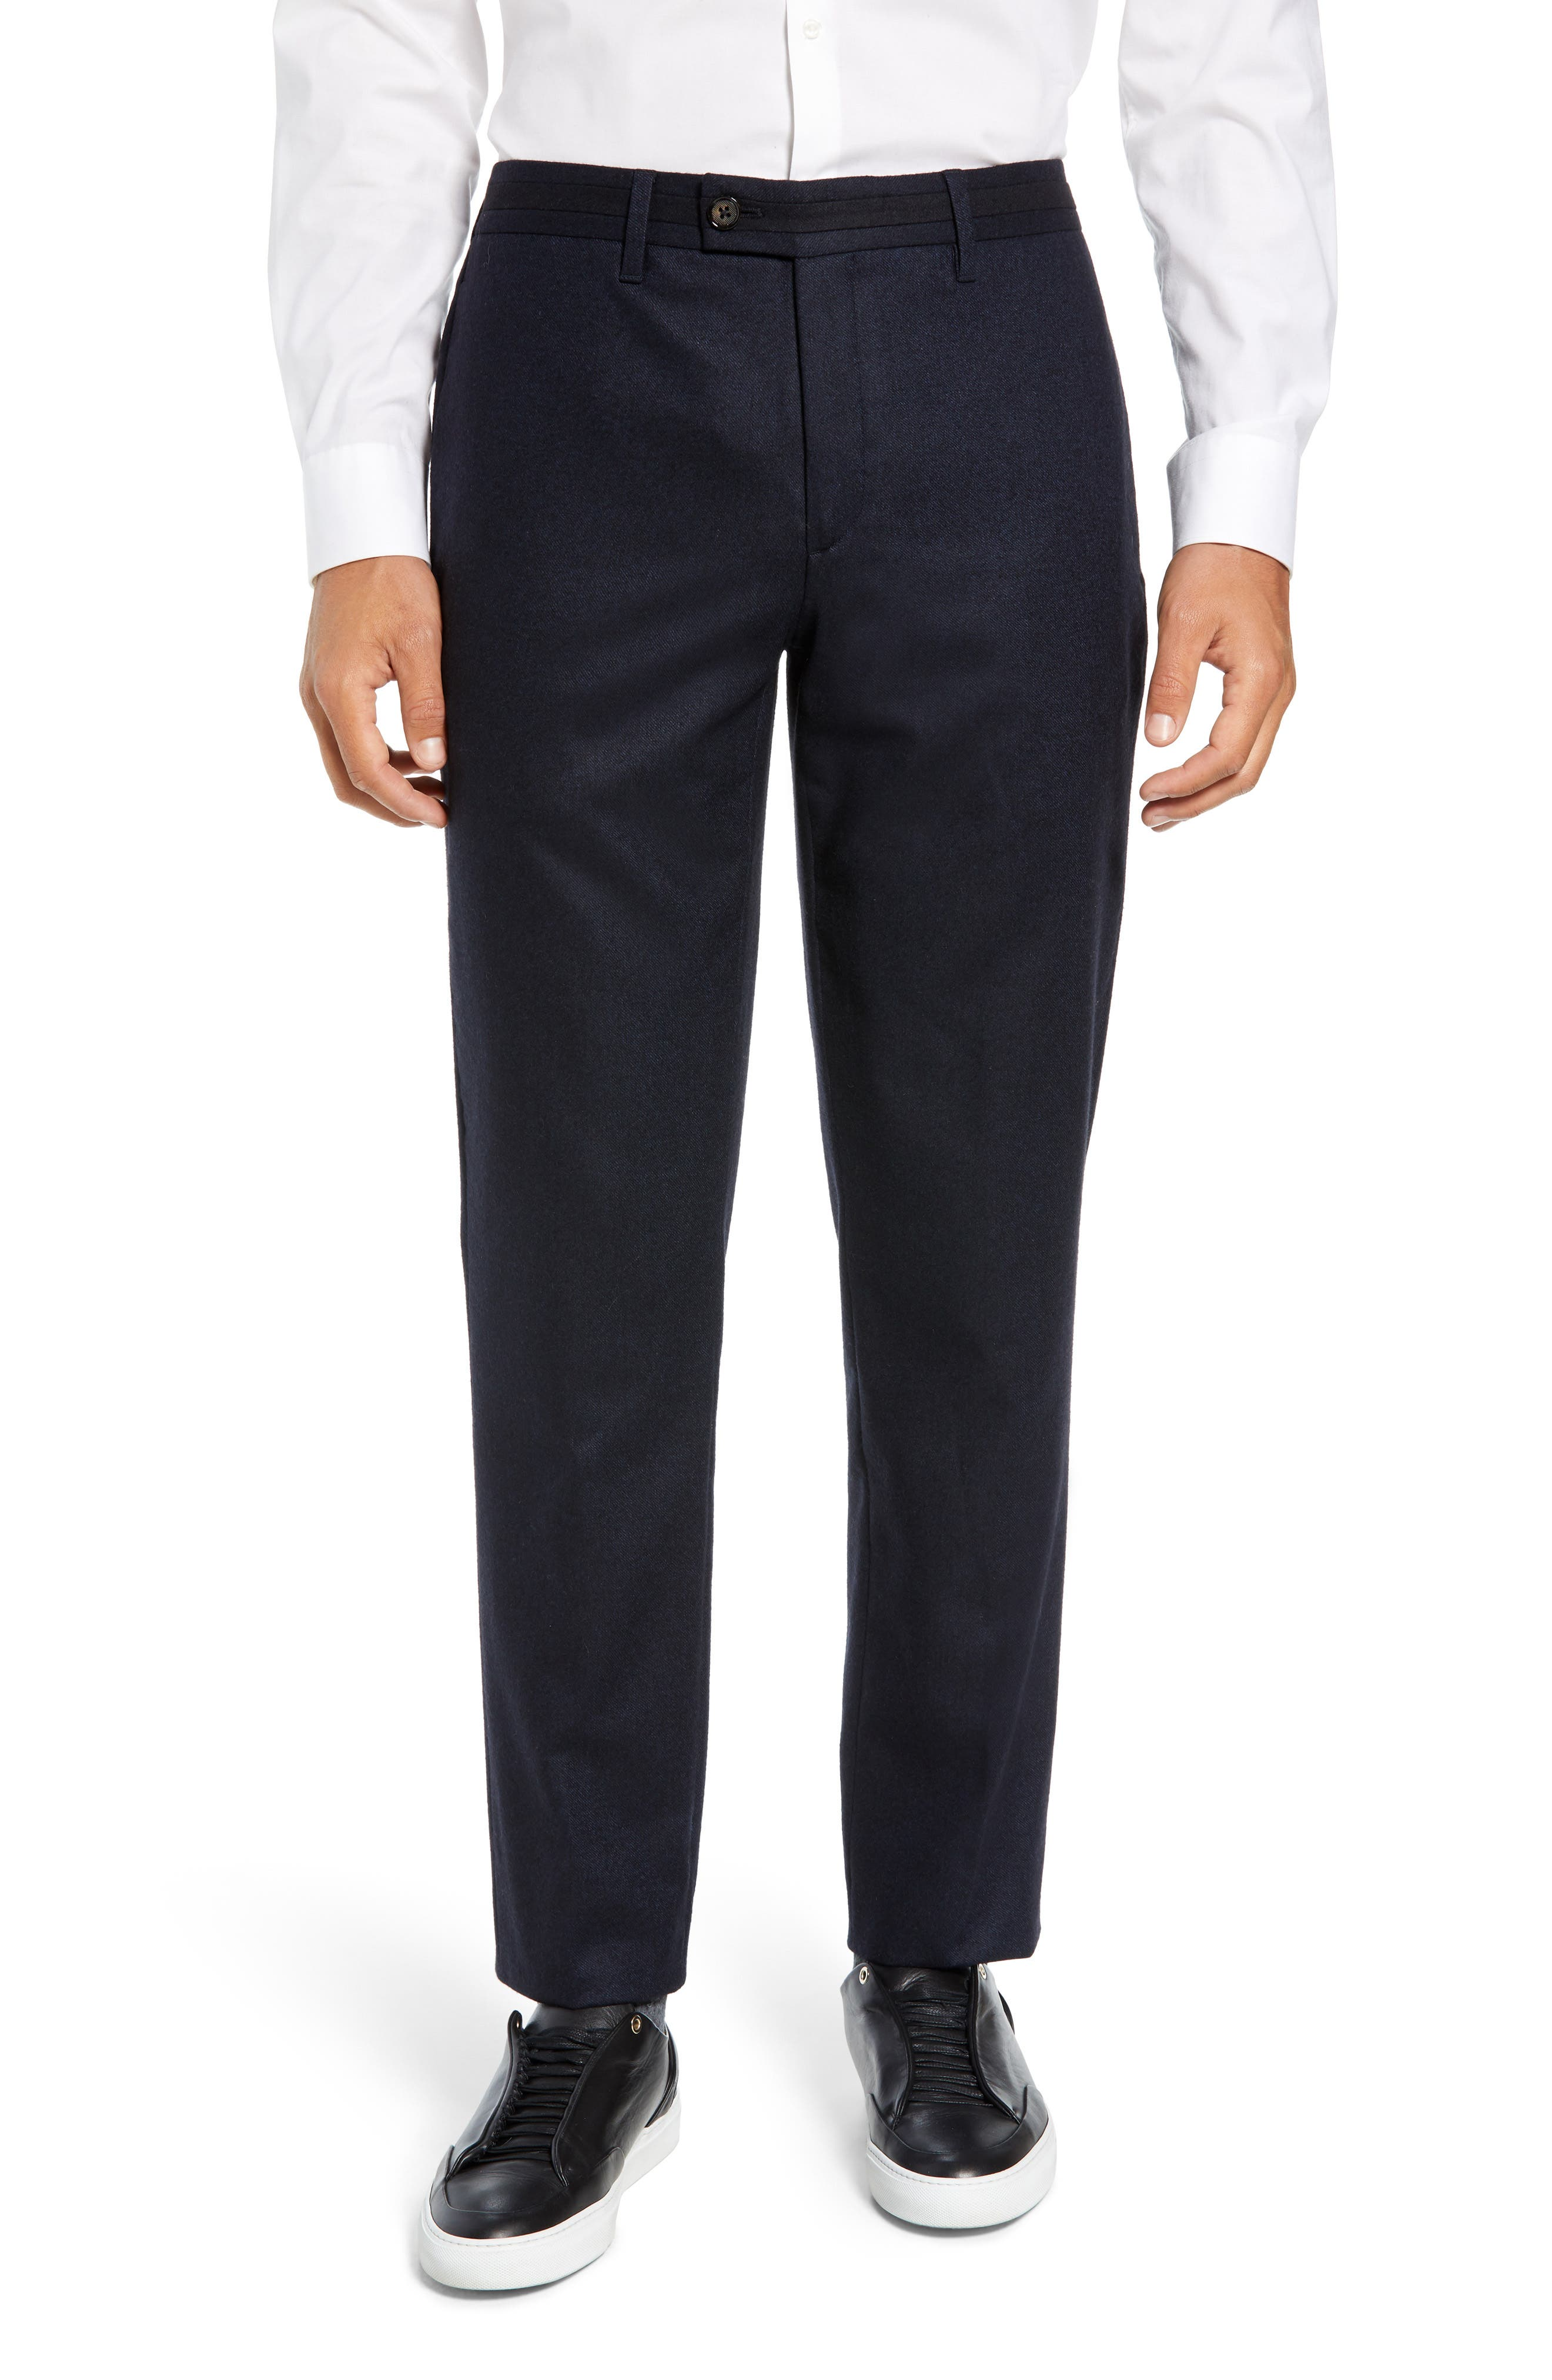 Matztro Trim Fit Wool Blend Trousers,                             Main thumbnail 1, color,                             NAVY